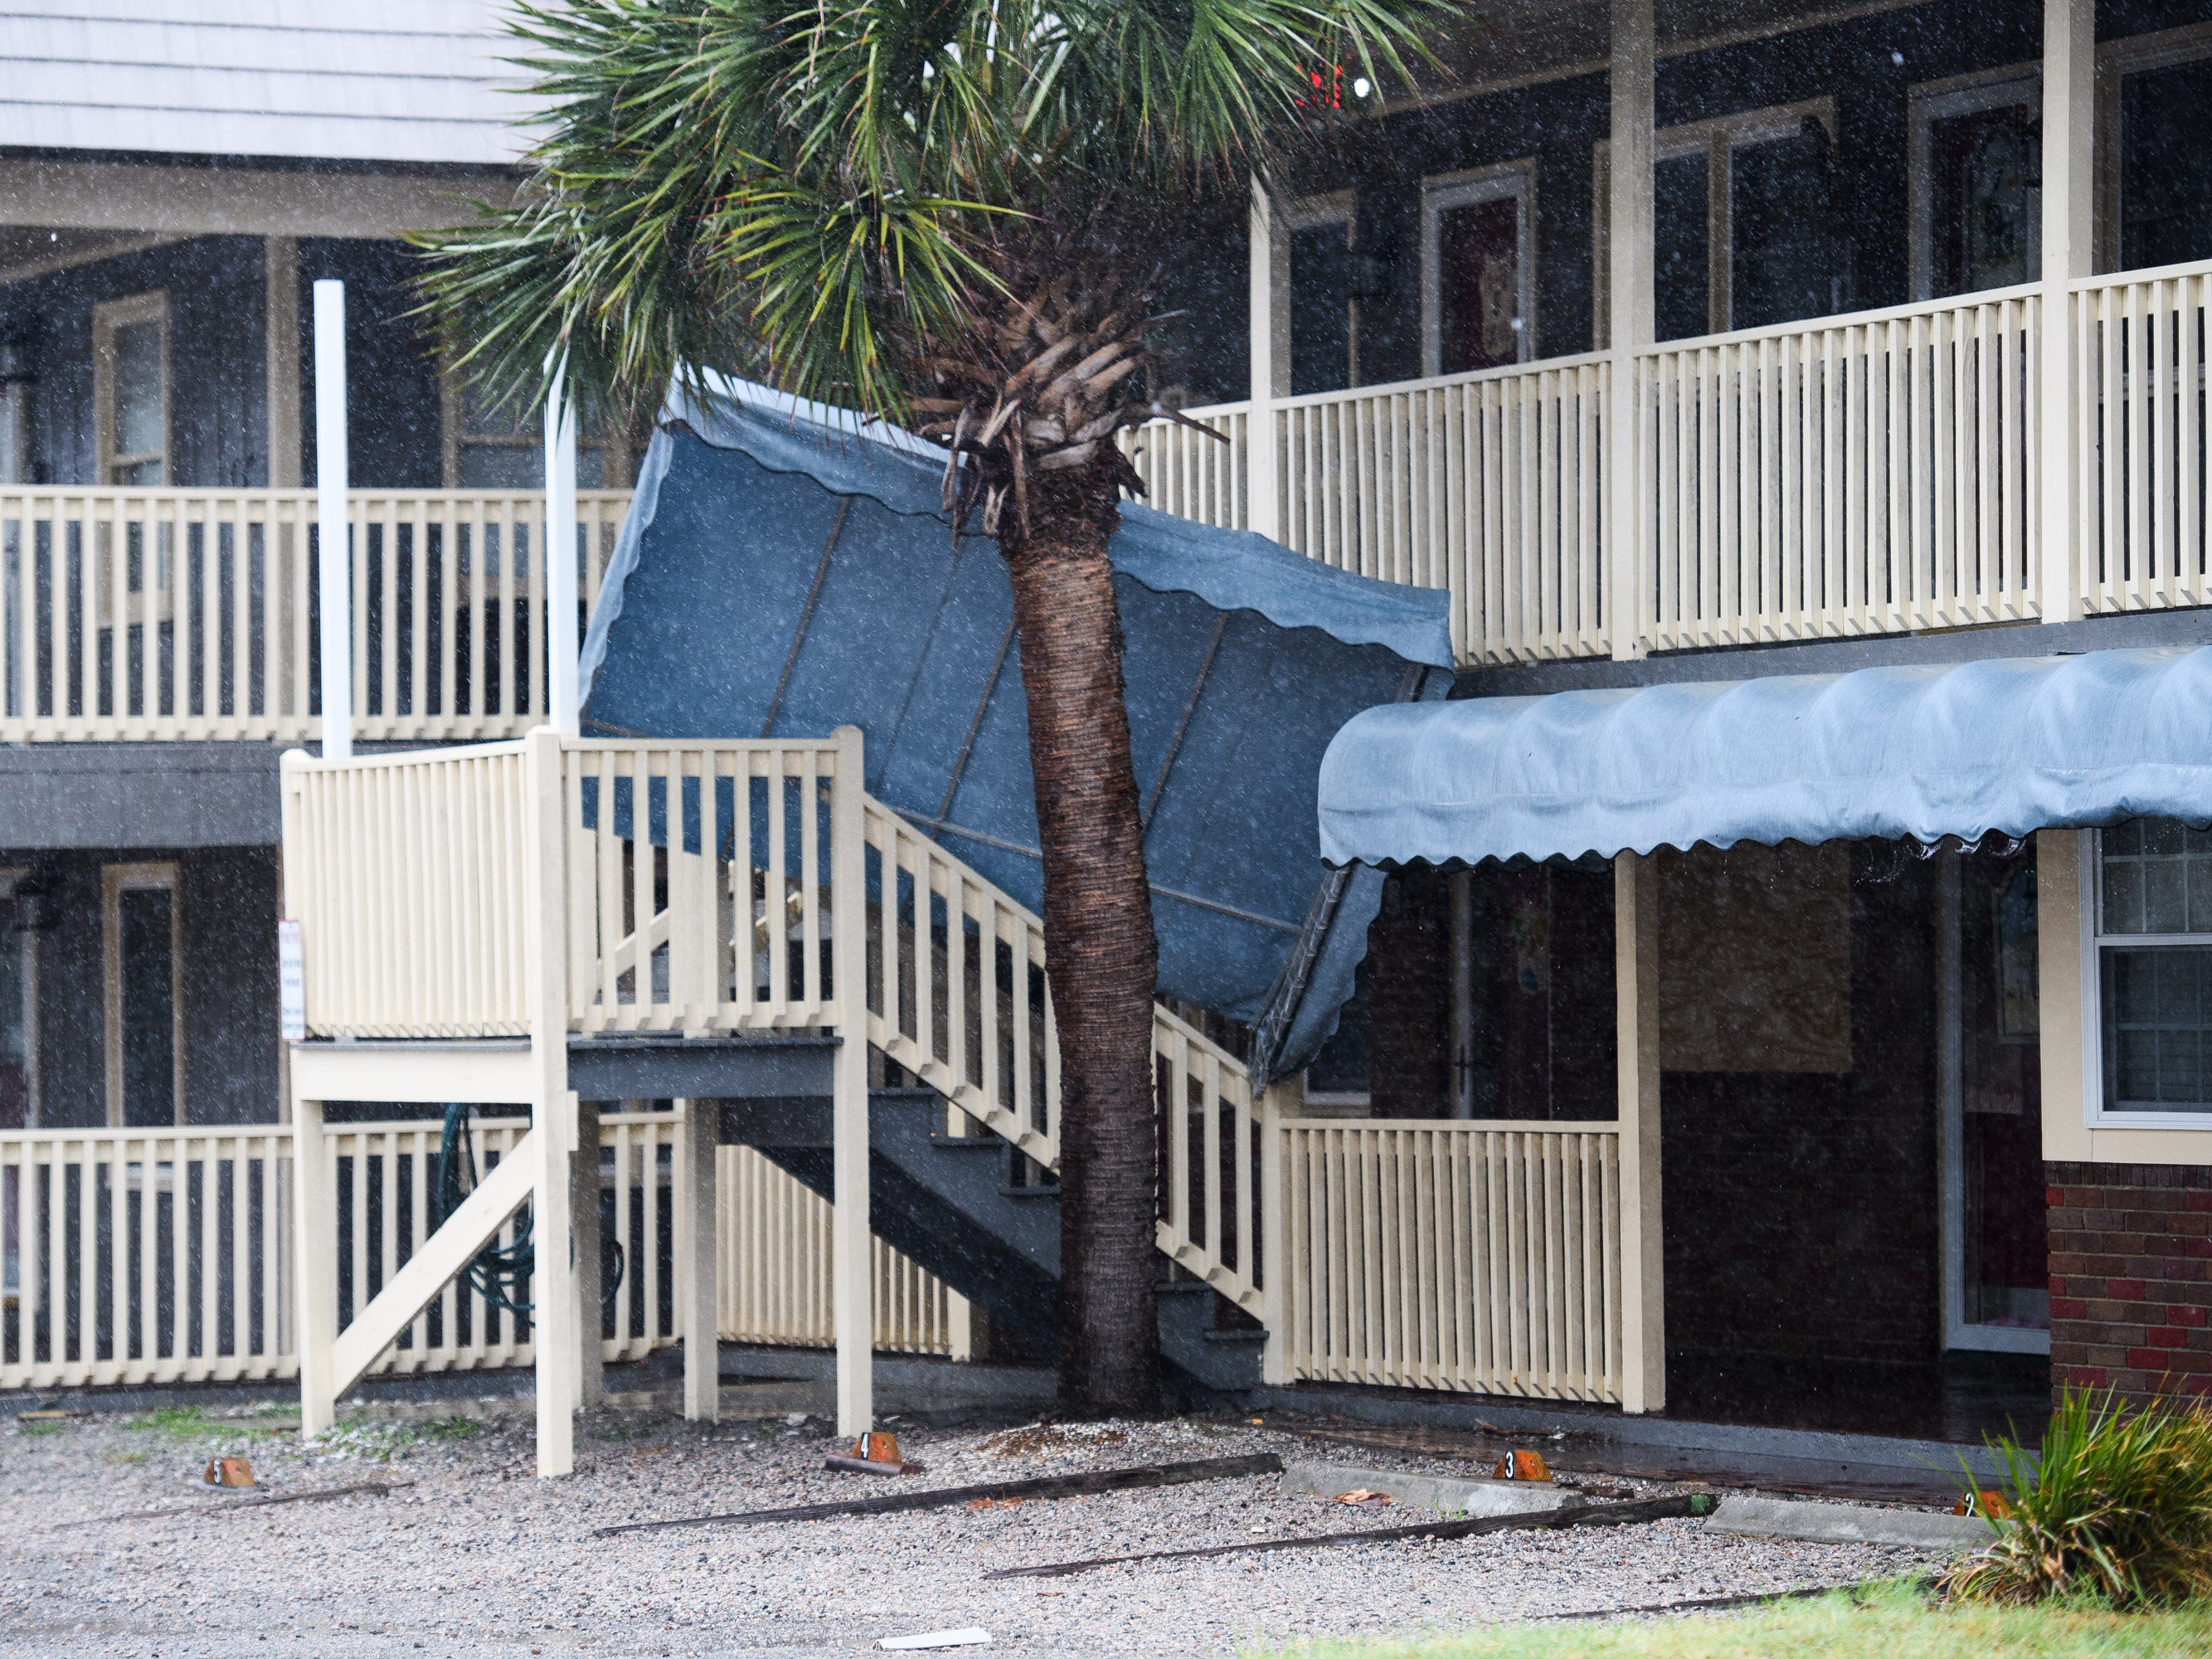 An apartment canopy is knocked down due to strong winds in North Myrtle Beach as Hurricane Florence continues its path towards South Carolina on Friday, Sept. 14, 2018.